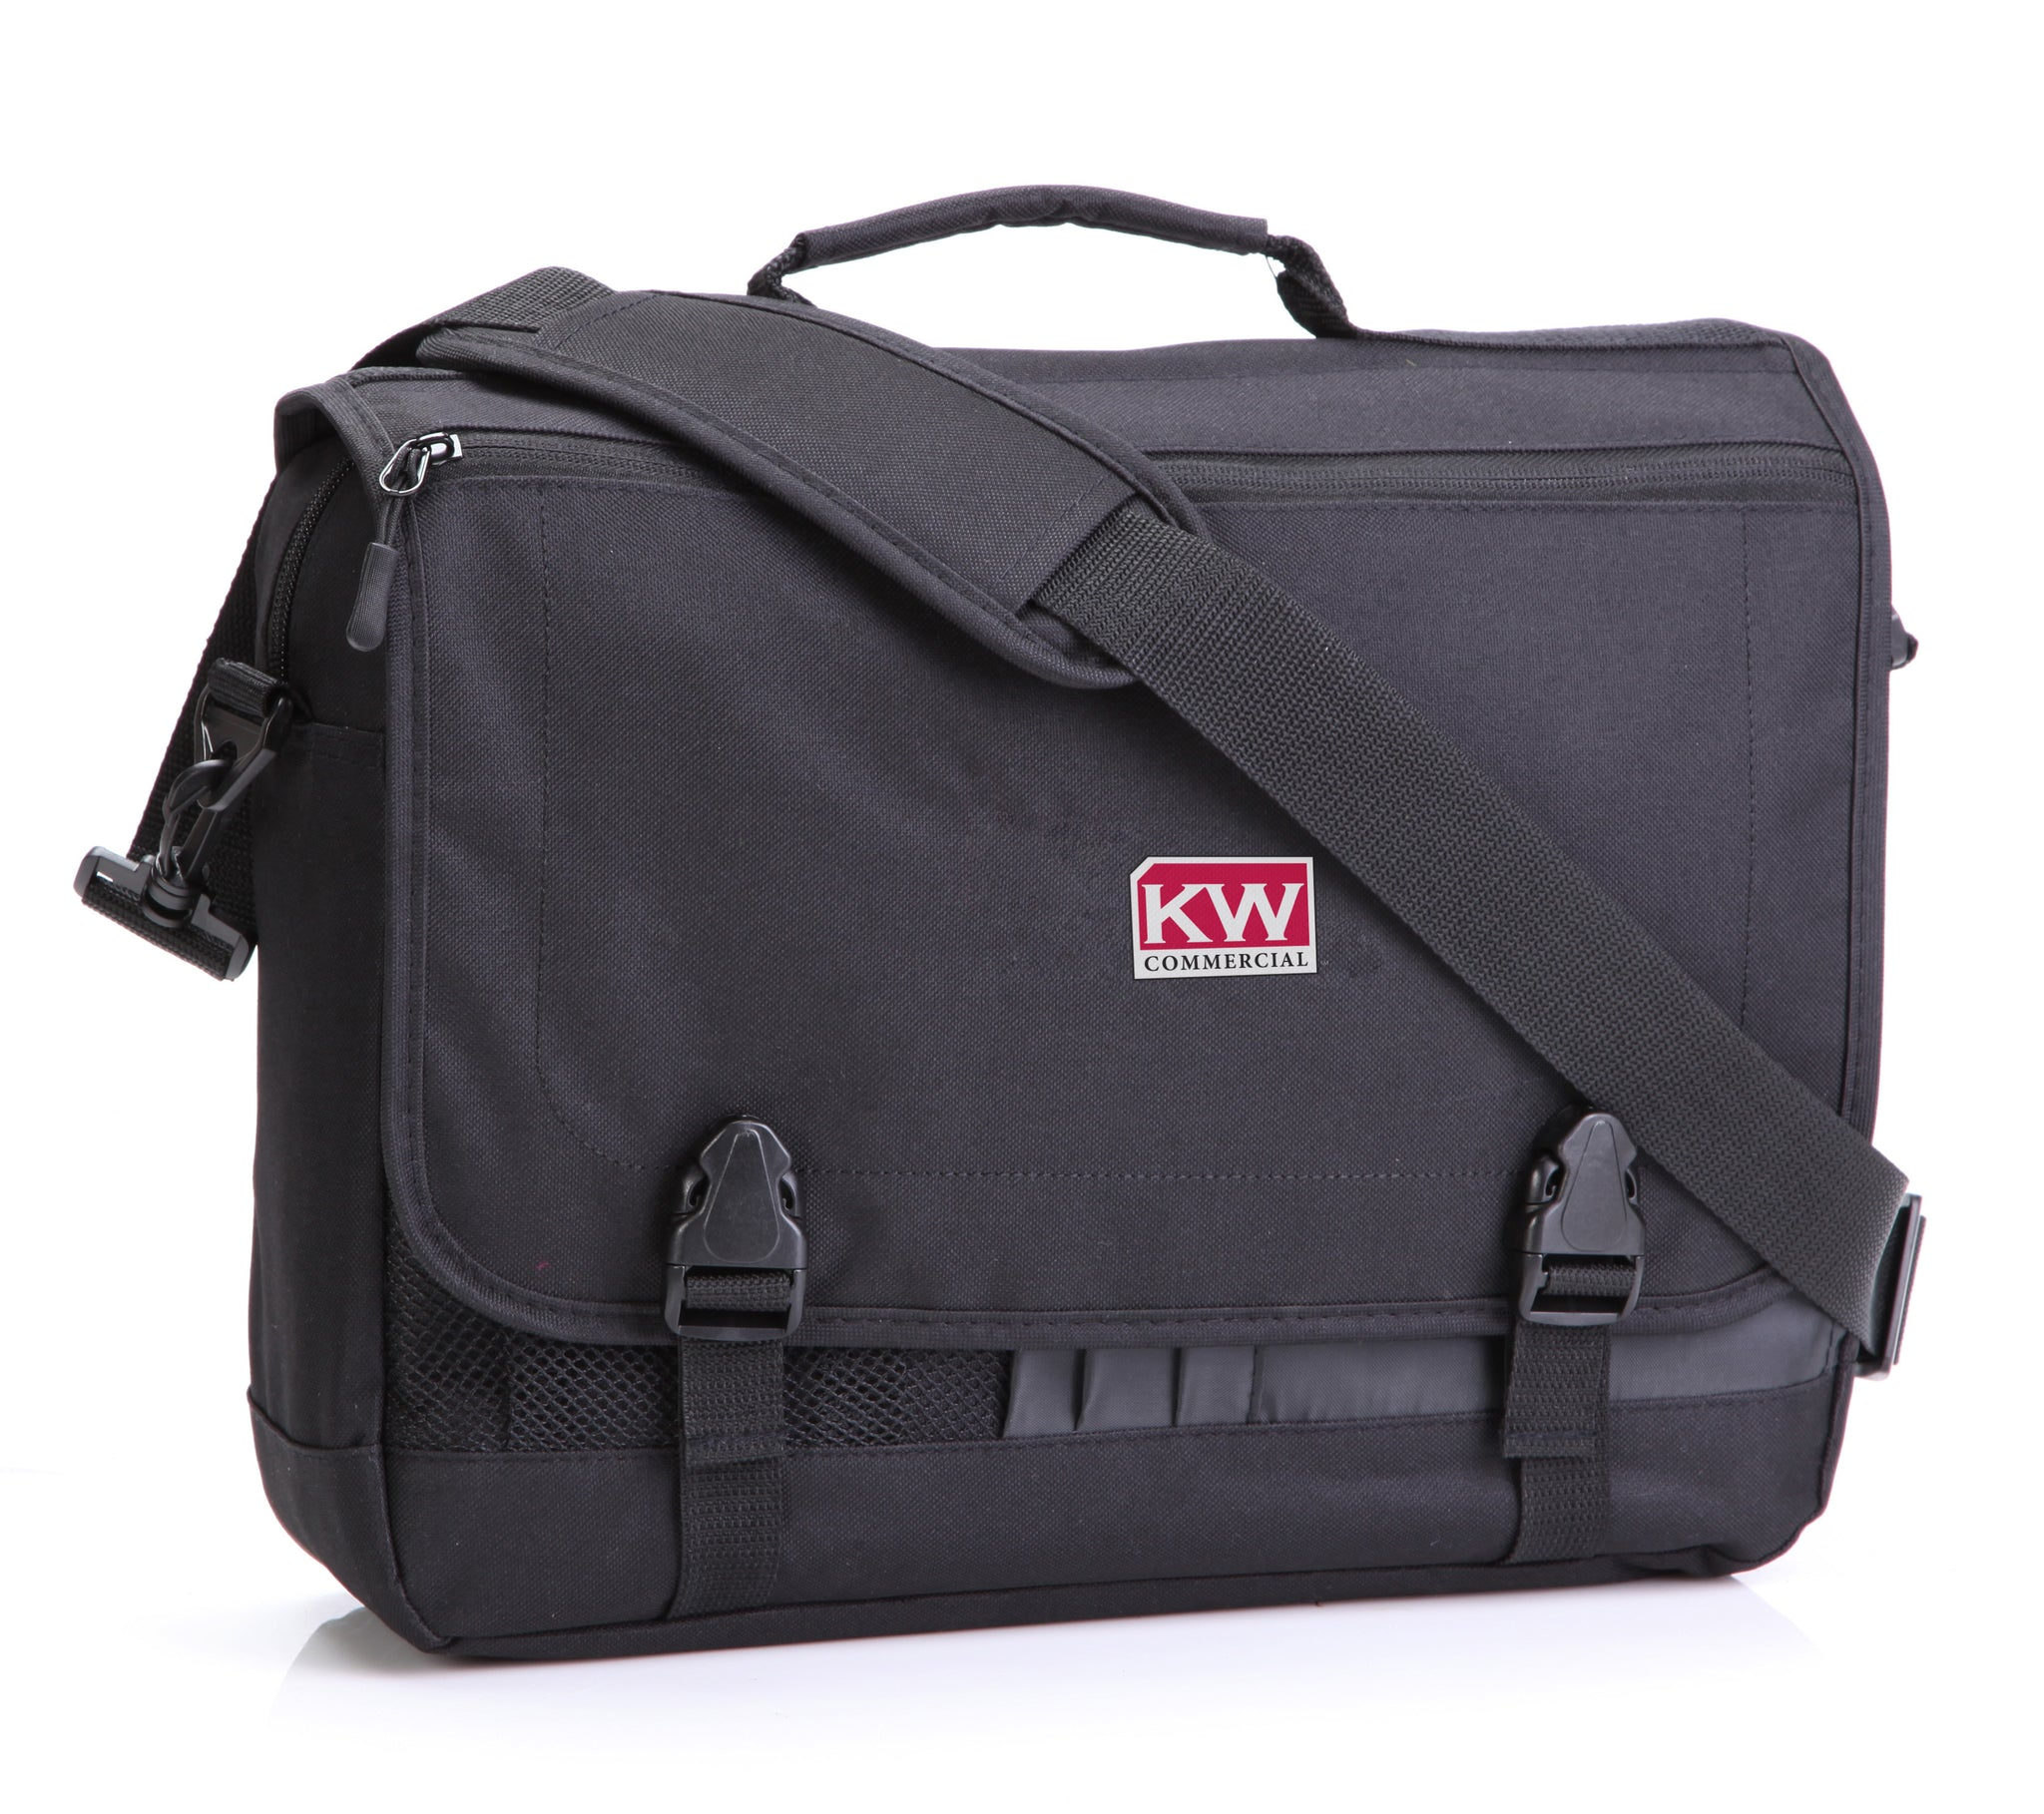 KW Commercial Messenger Bag